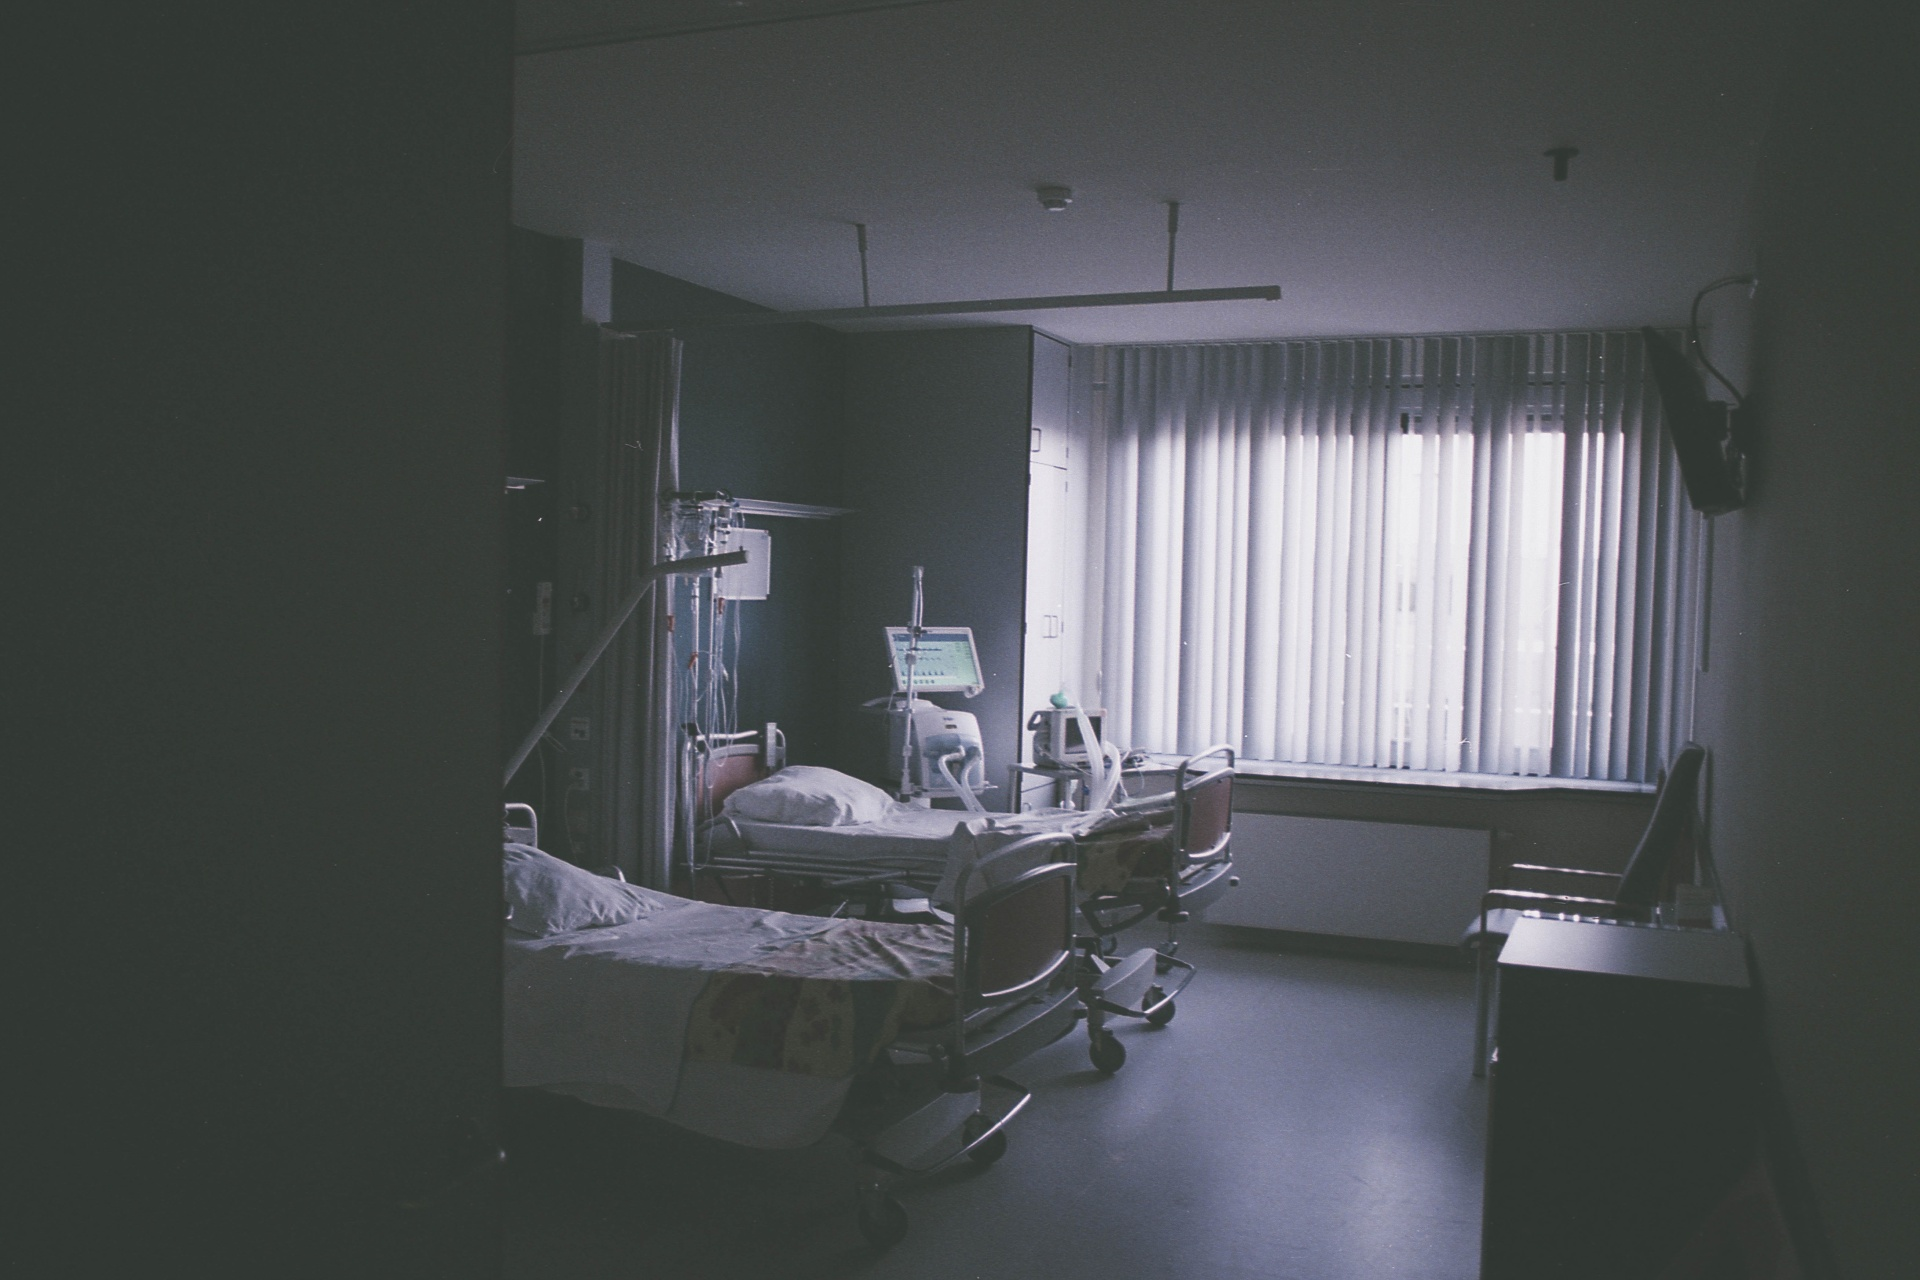 49 Real Nurses Share The Terrifying Hospital Ghost Stories That Scared Them To Death